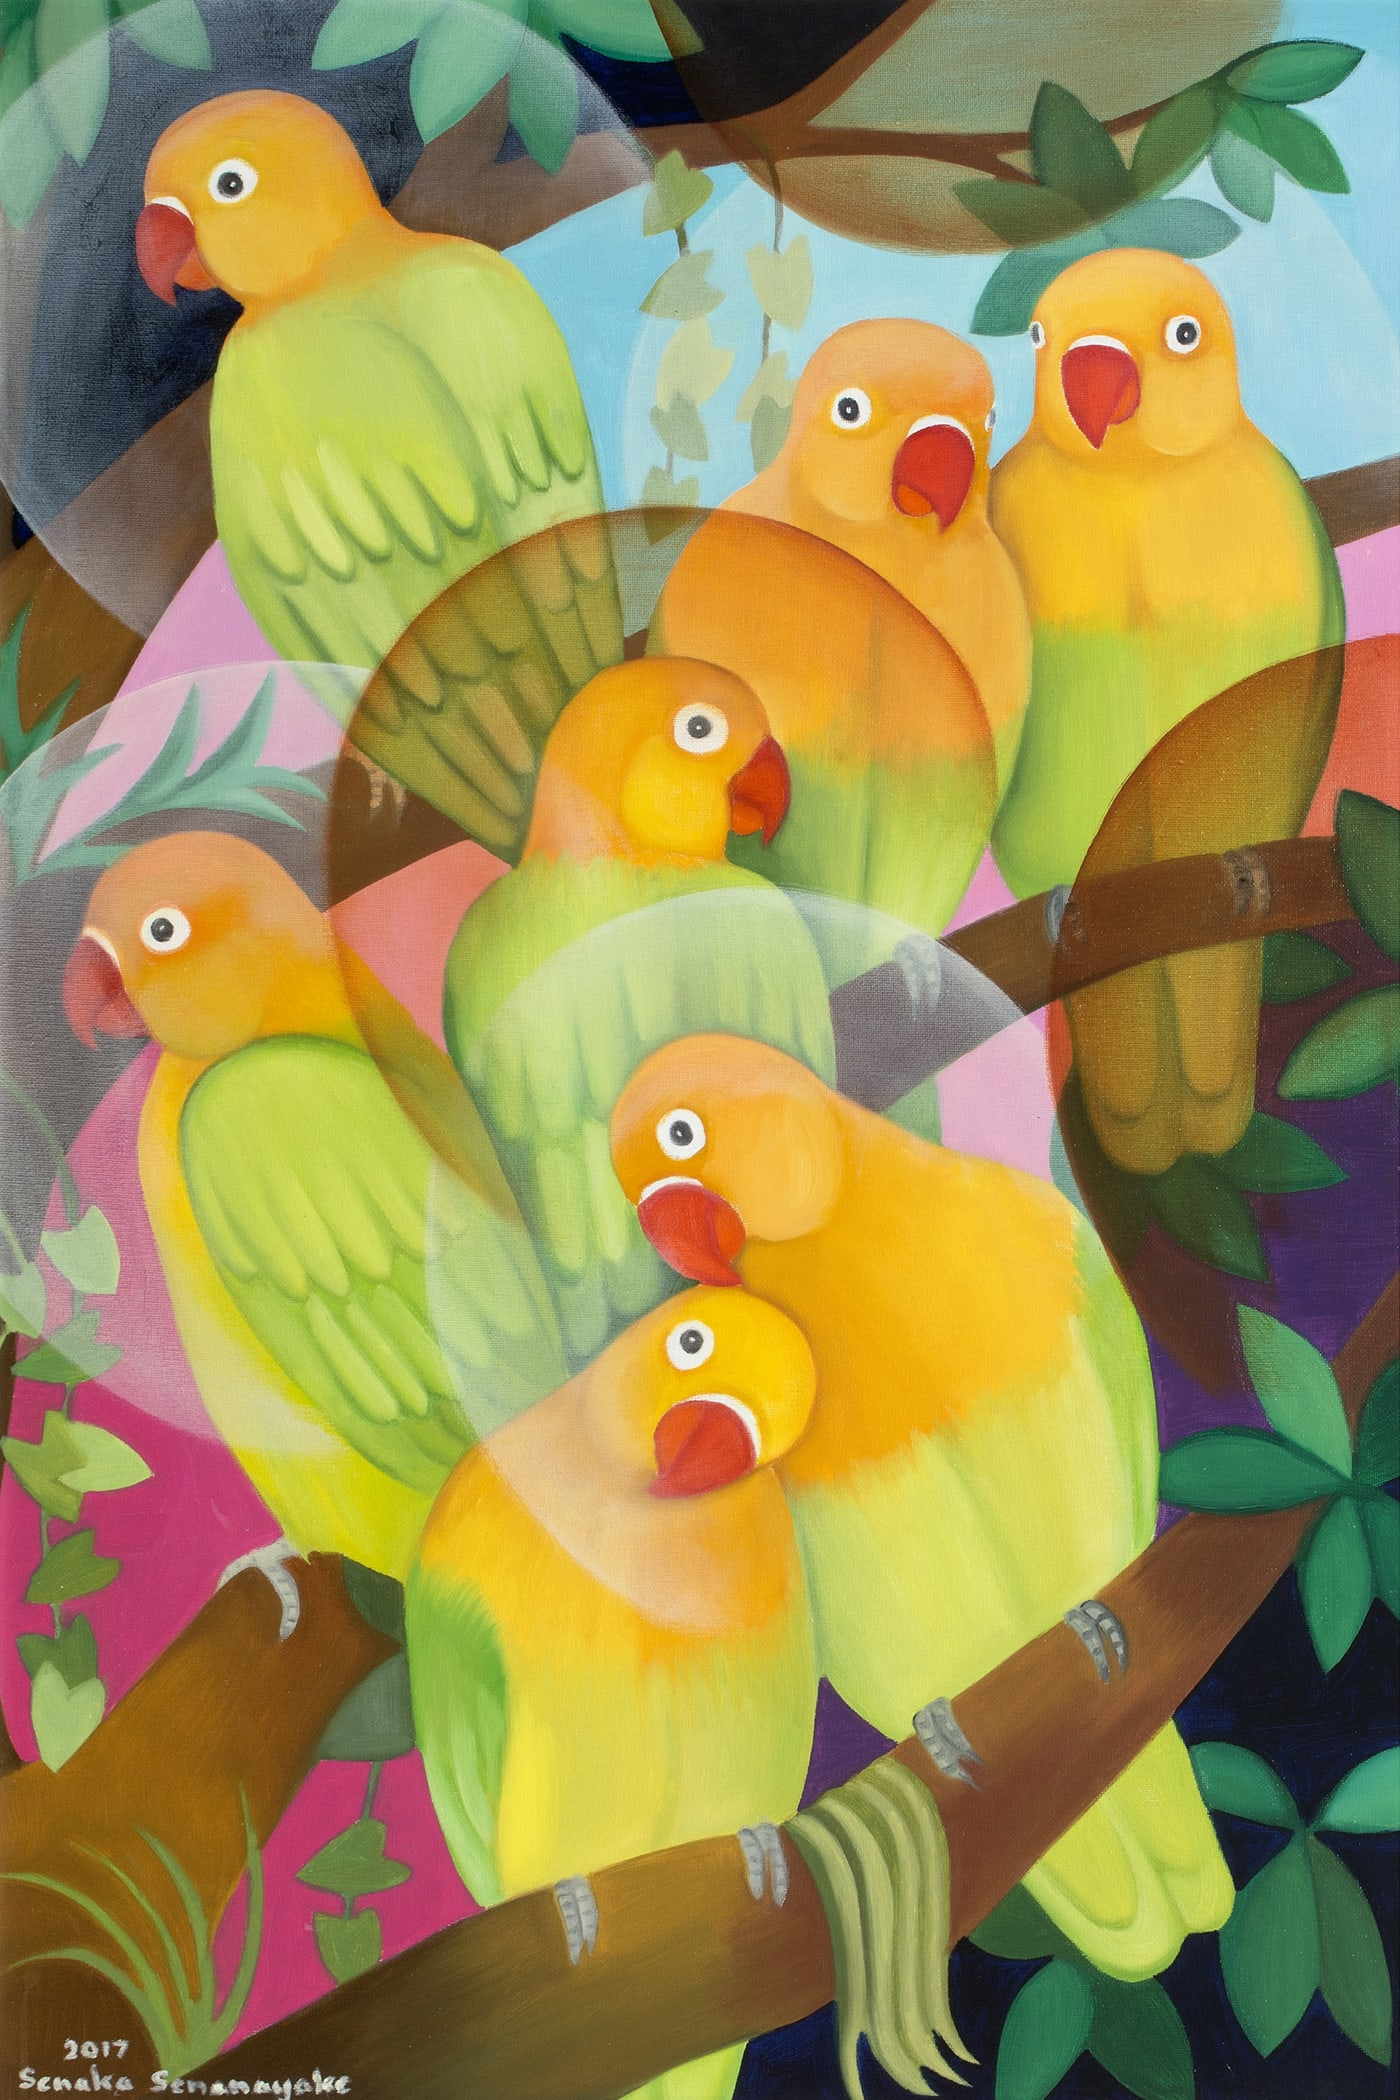 Senaka Senanayake Lovebirds 2017 Grosvenor Gallery